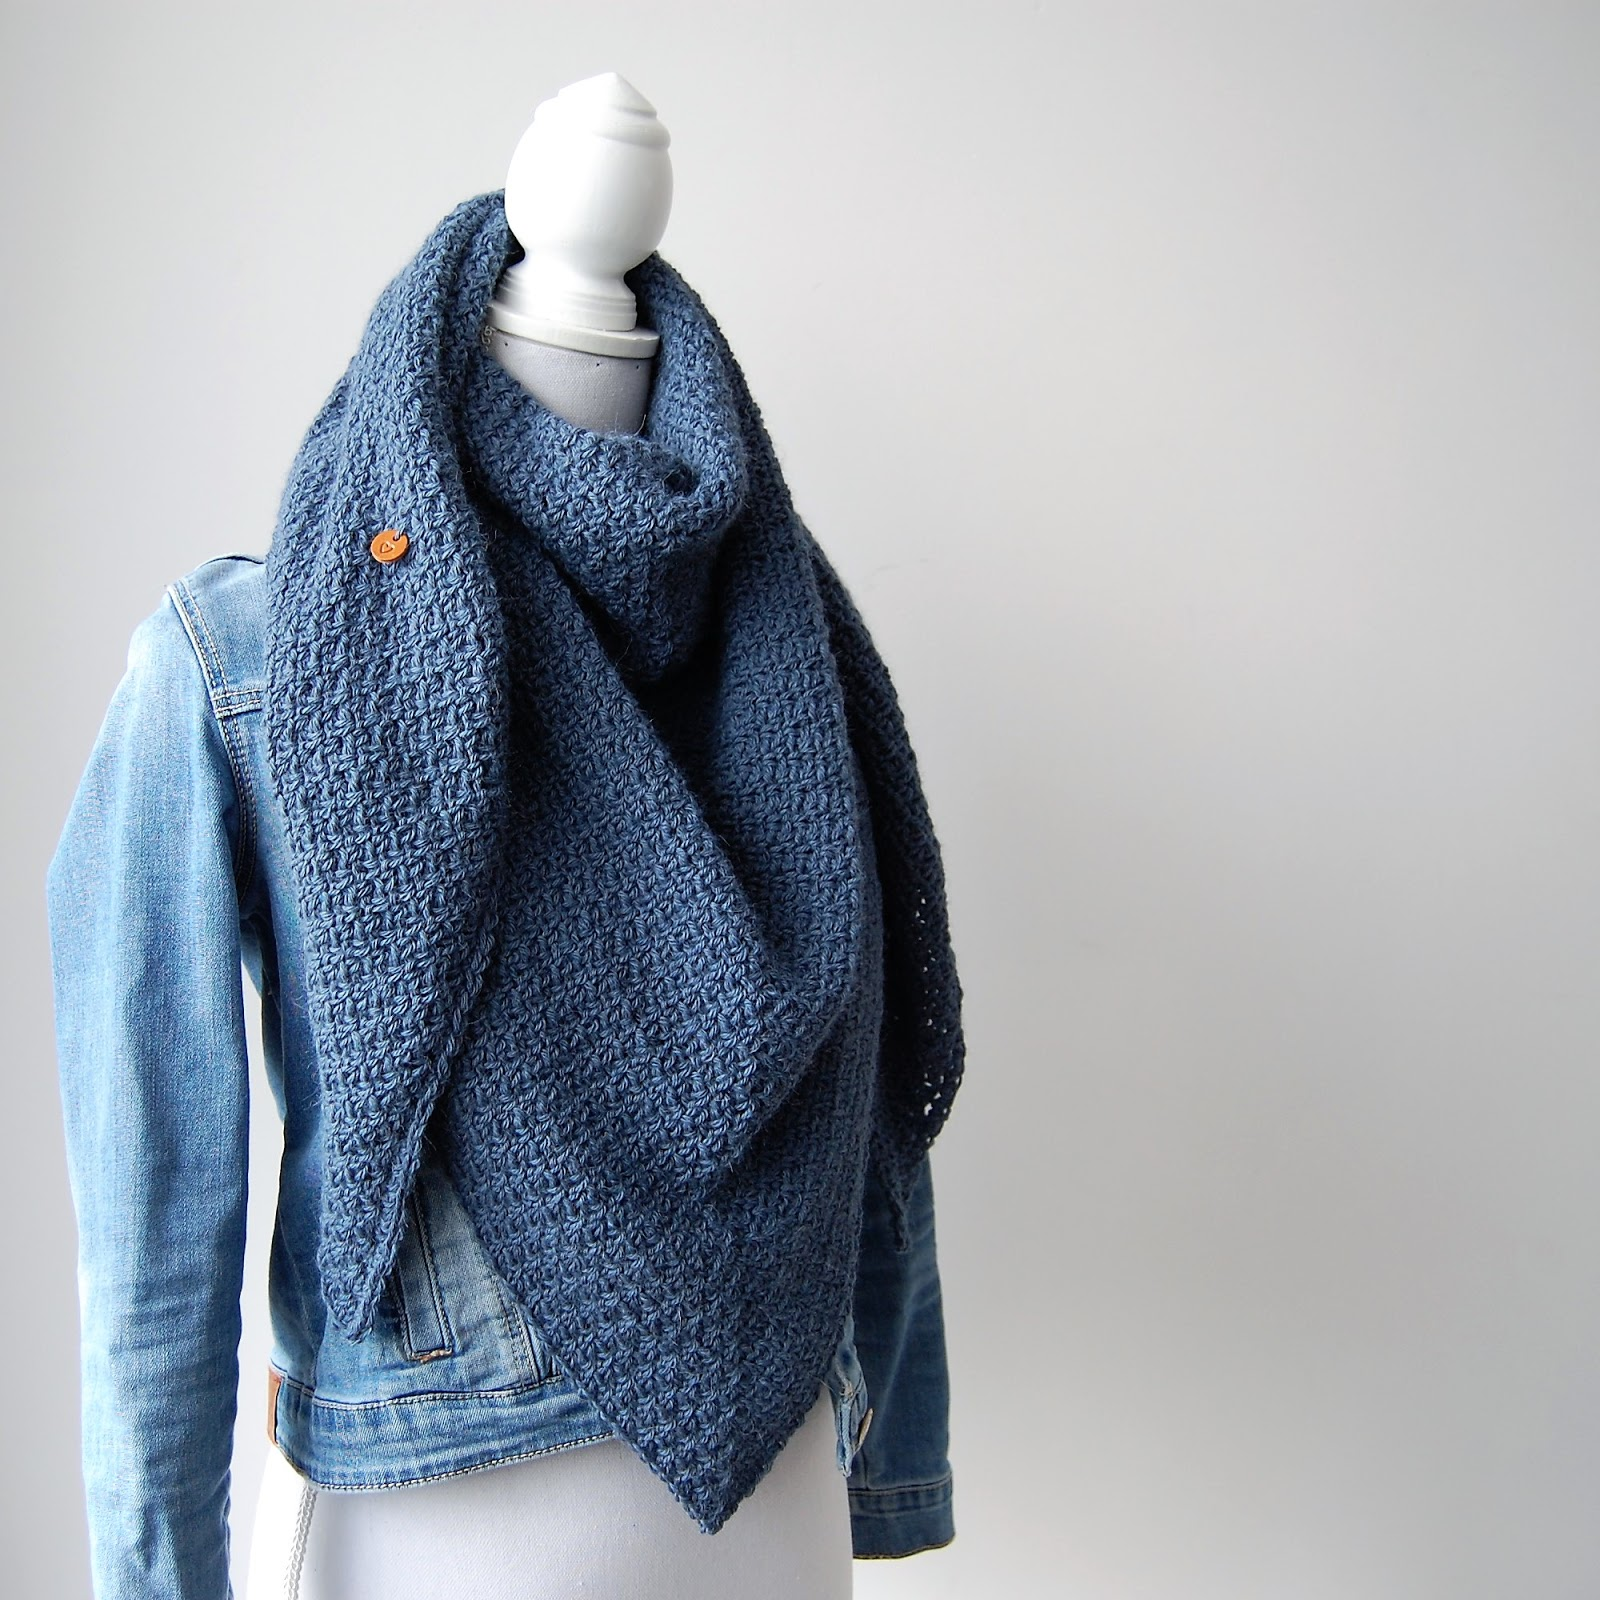 Haak By Daphne Denim Blauwe Sjaal